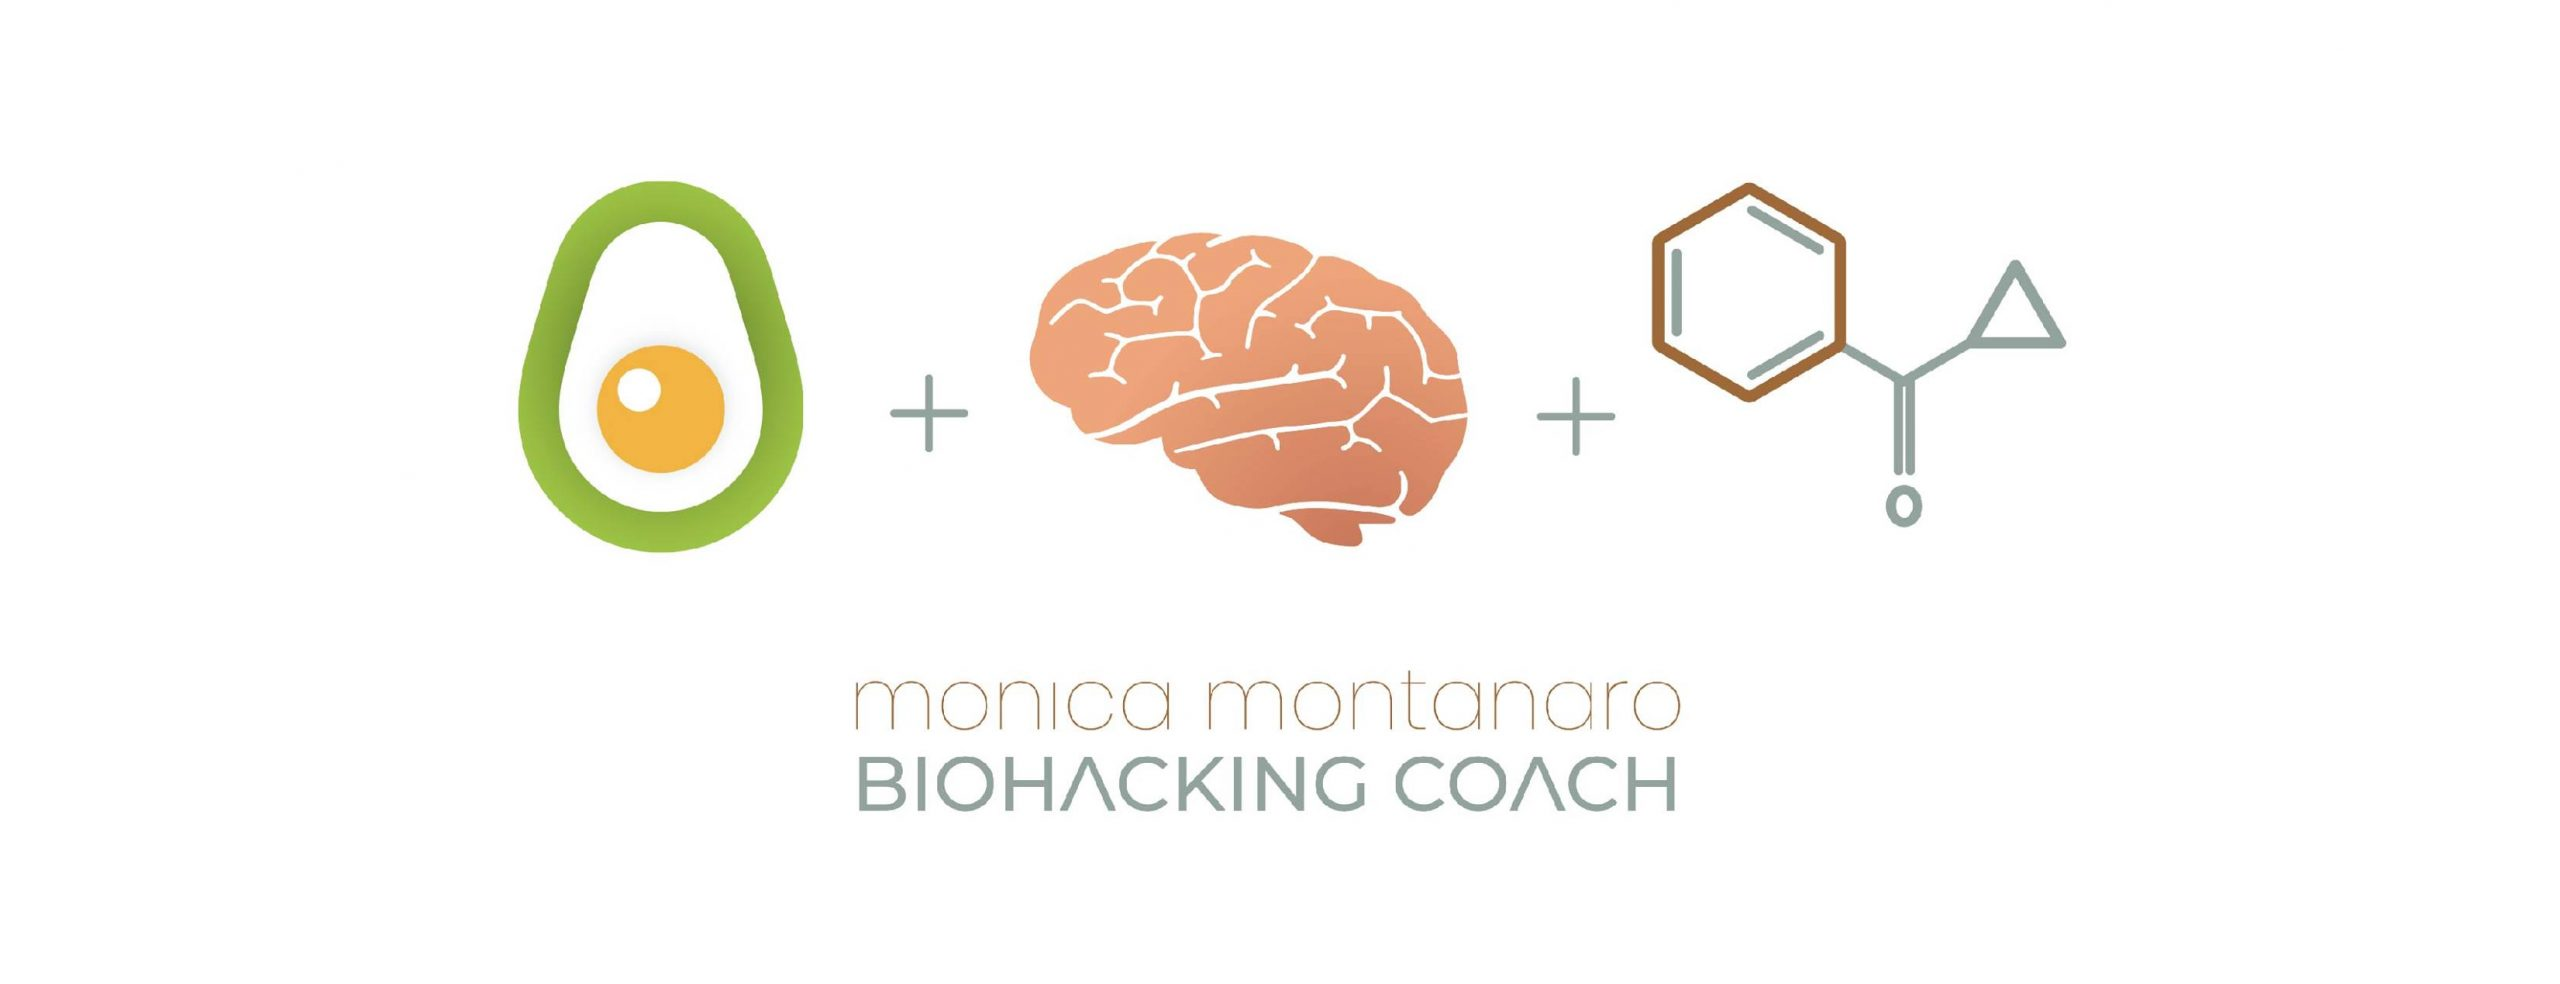 intervista-monica-montanaro-biohacking-coach